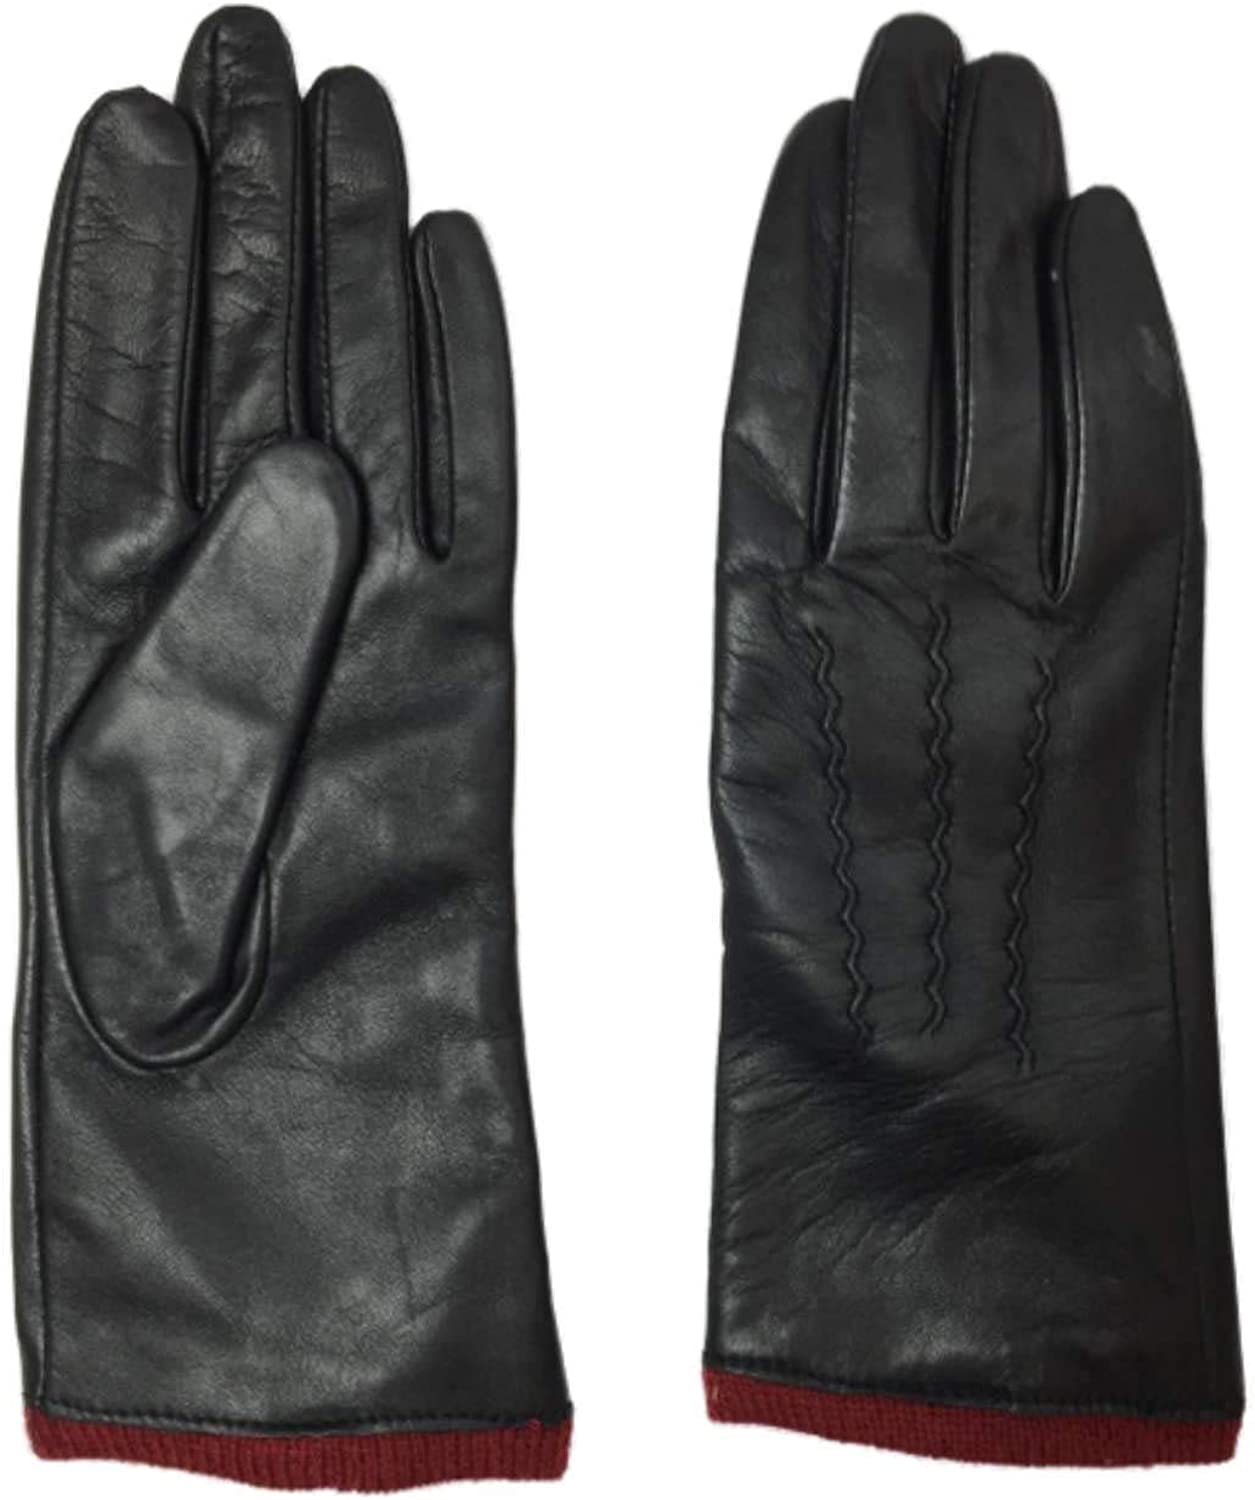 Womens Black & Red Leather Gloves Acrylic Lined Medium